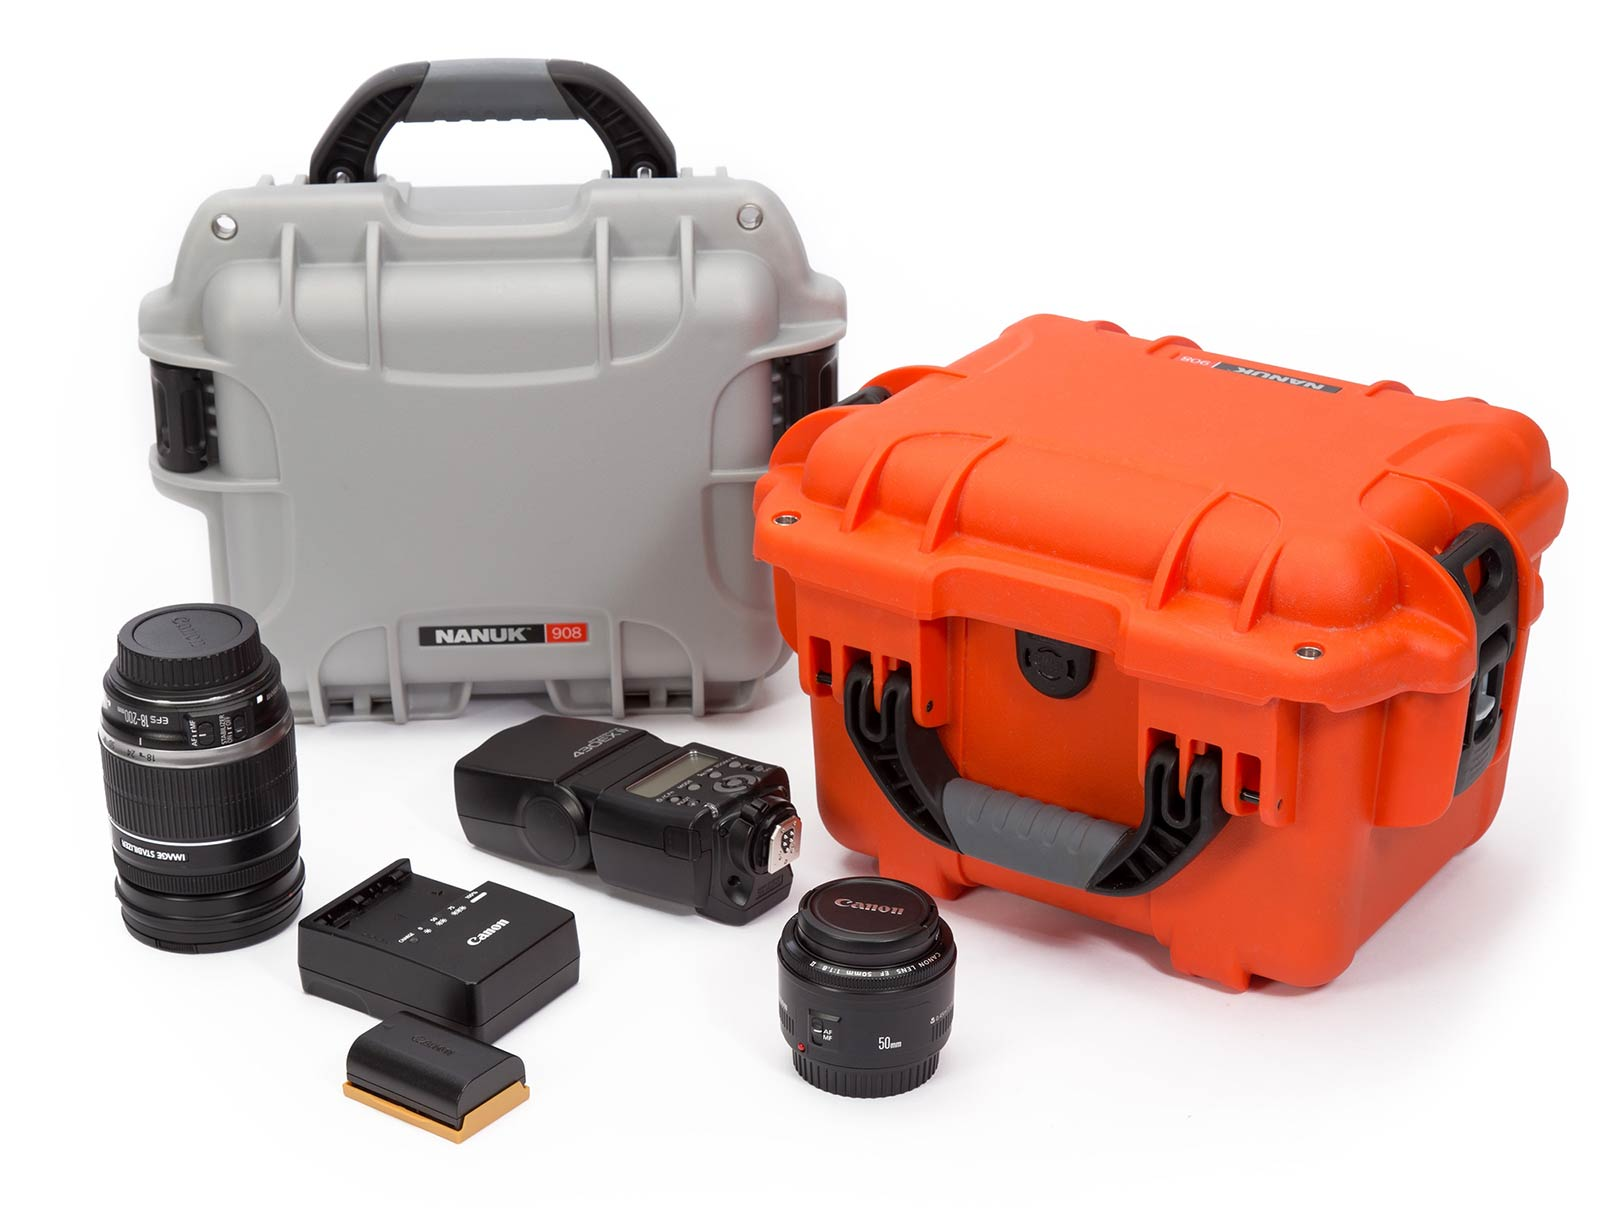 Nanuk 908 for Digital Camera and Lenses